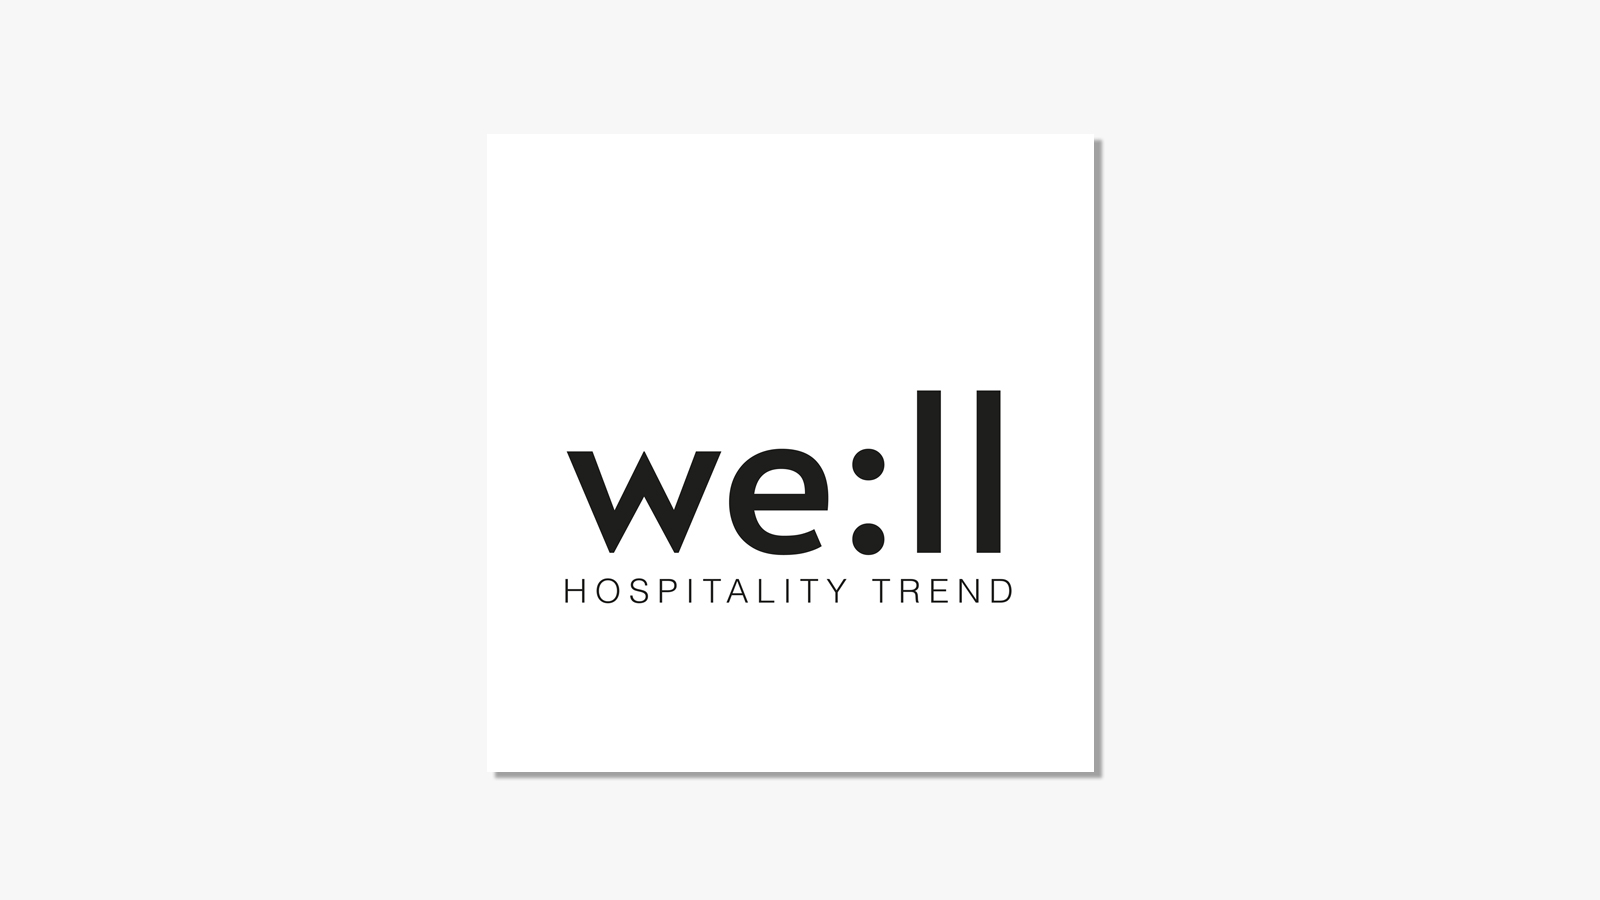 Well Magazine - Coverage on Italy's Hospitality Trends